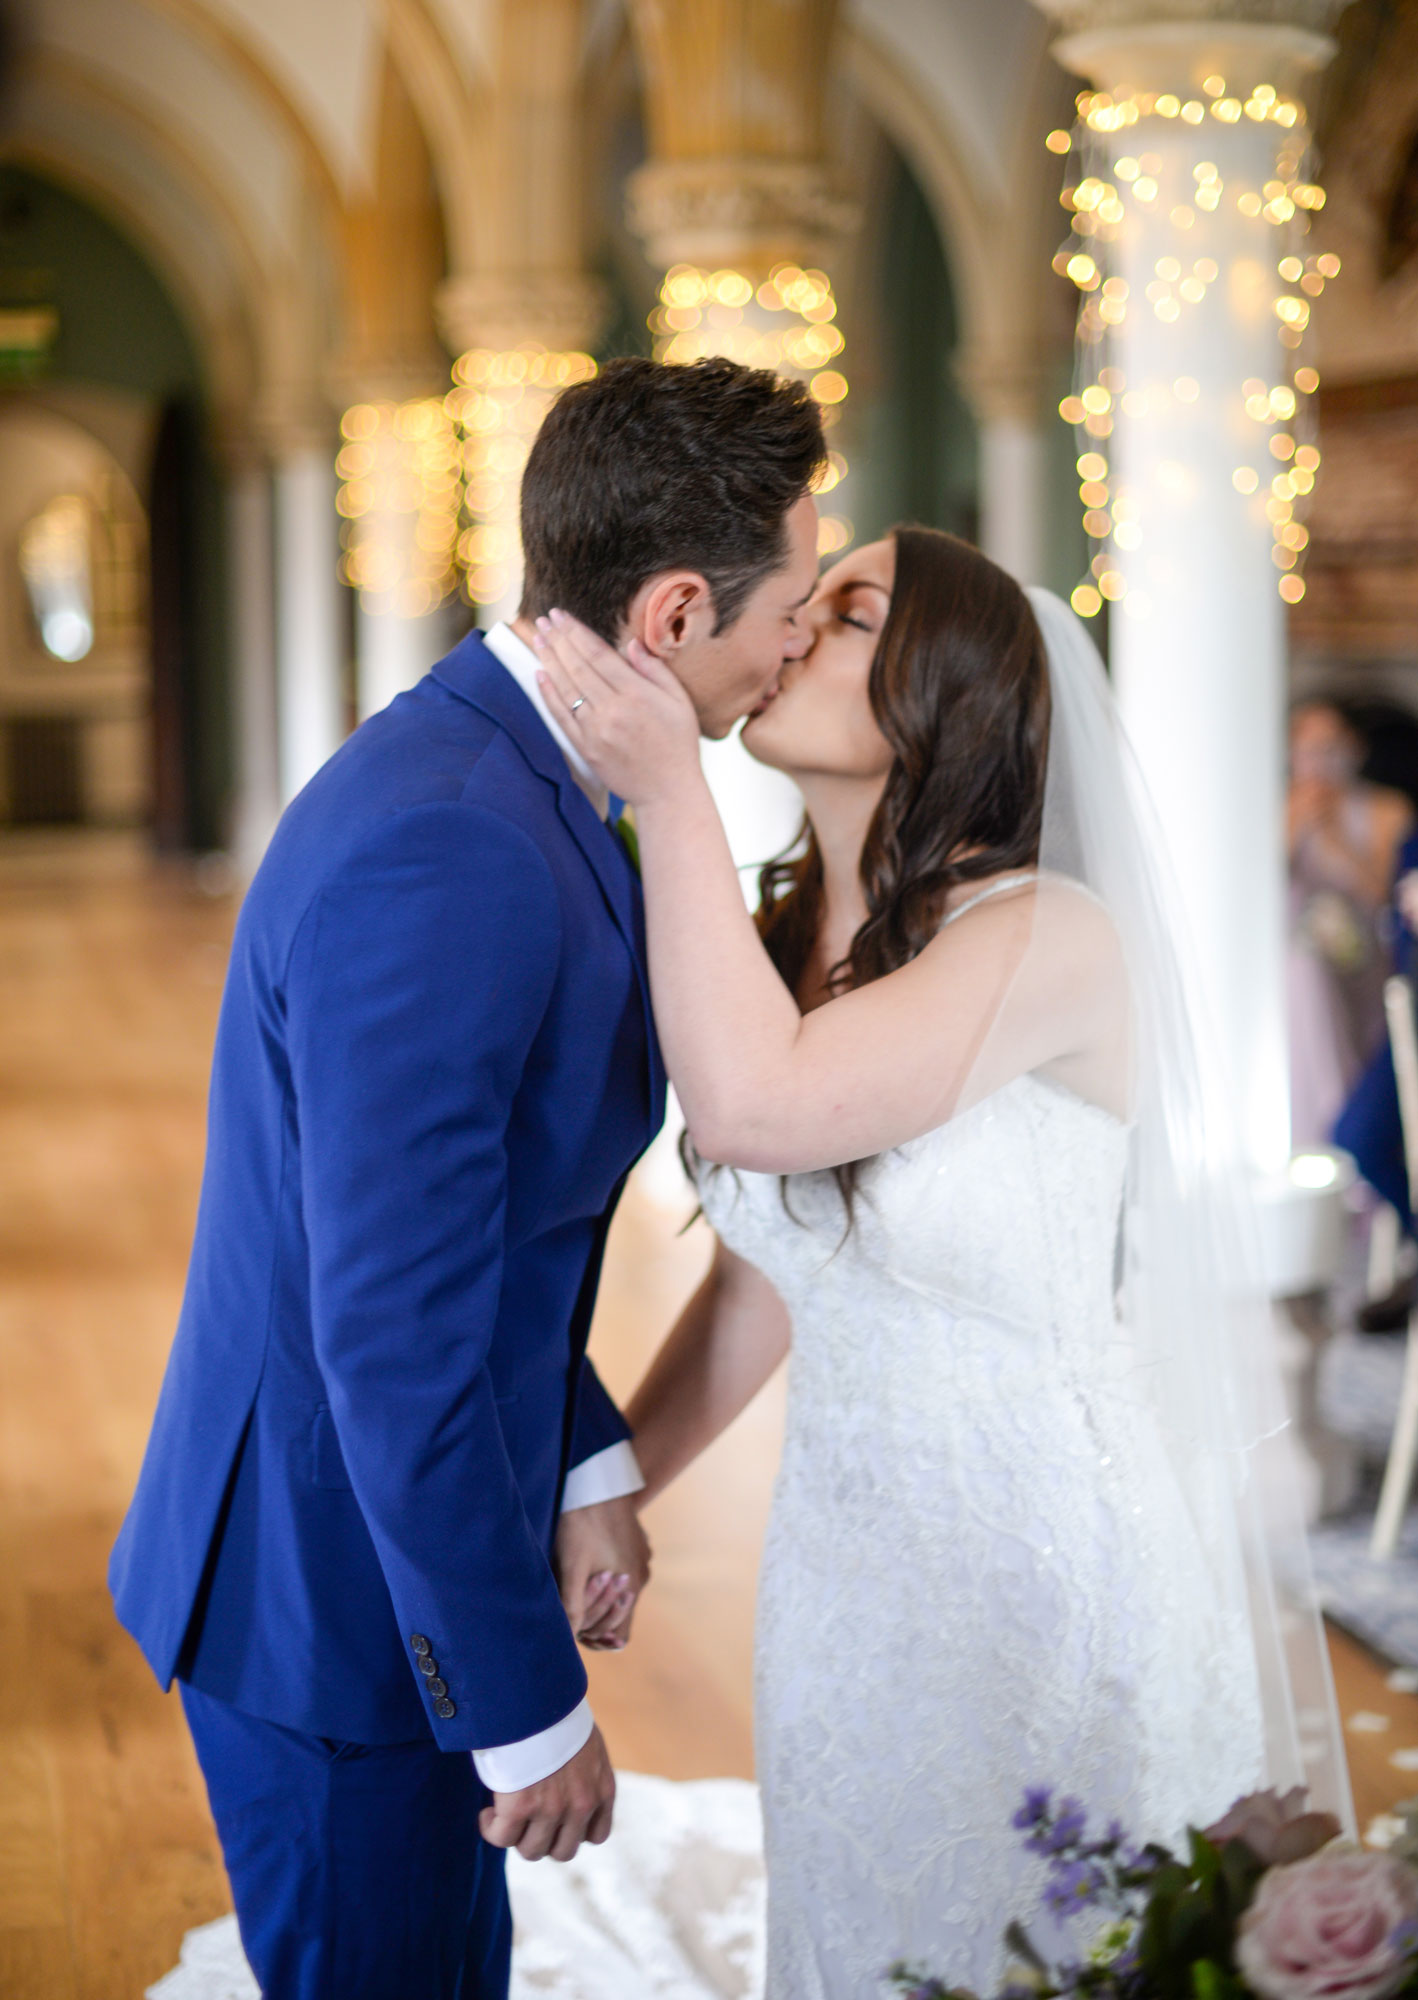 Bride and Groom kissing in Ceremony at Wedding Photo Wotton House